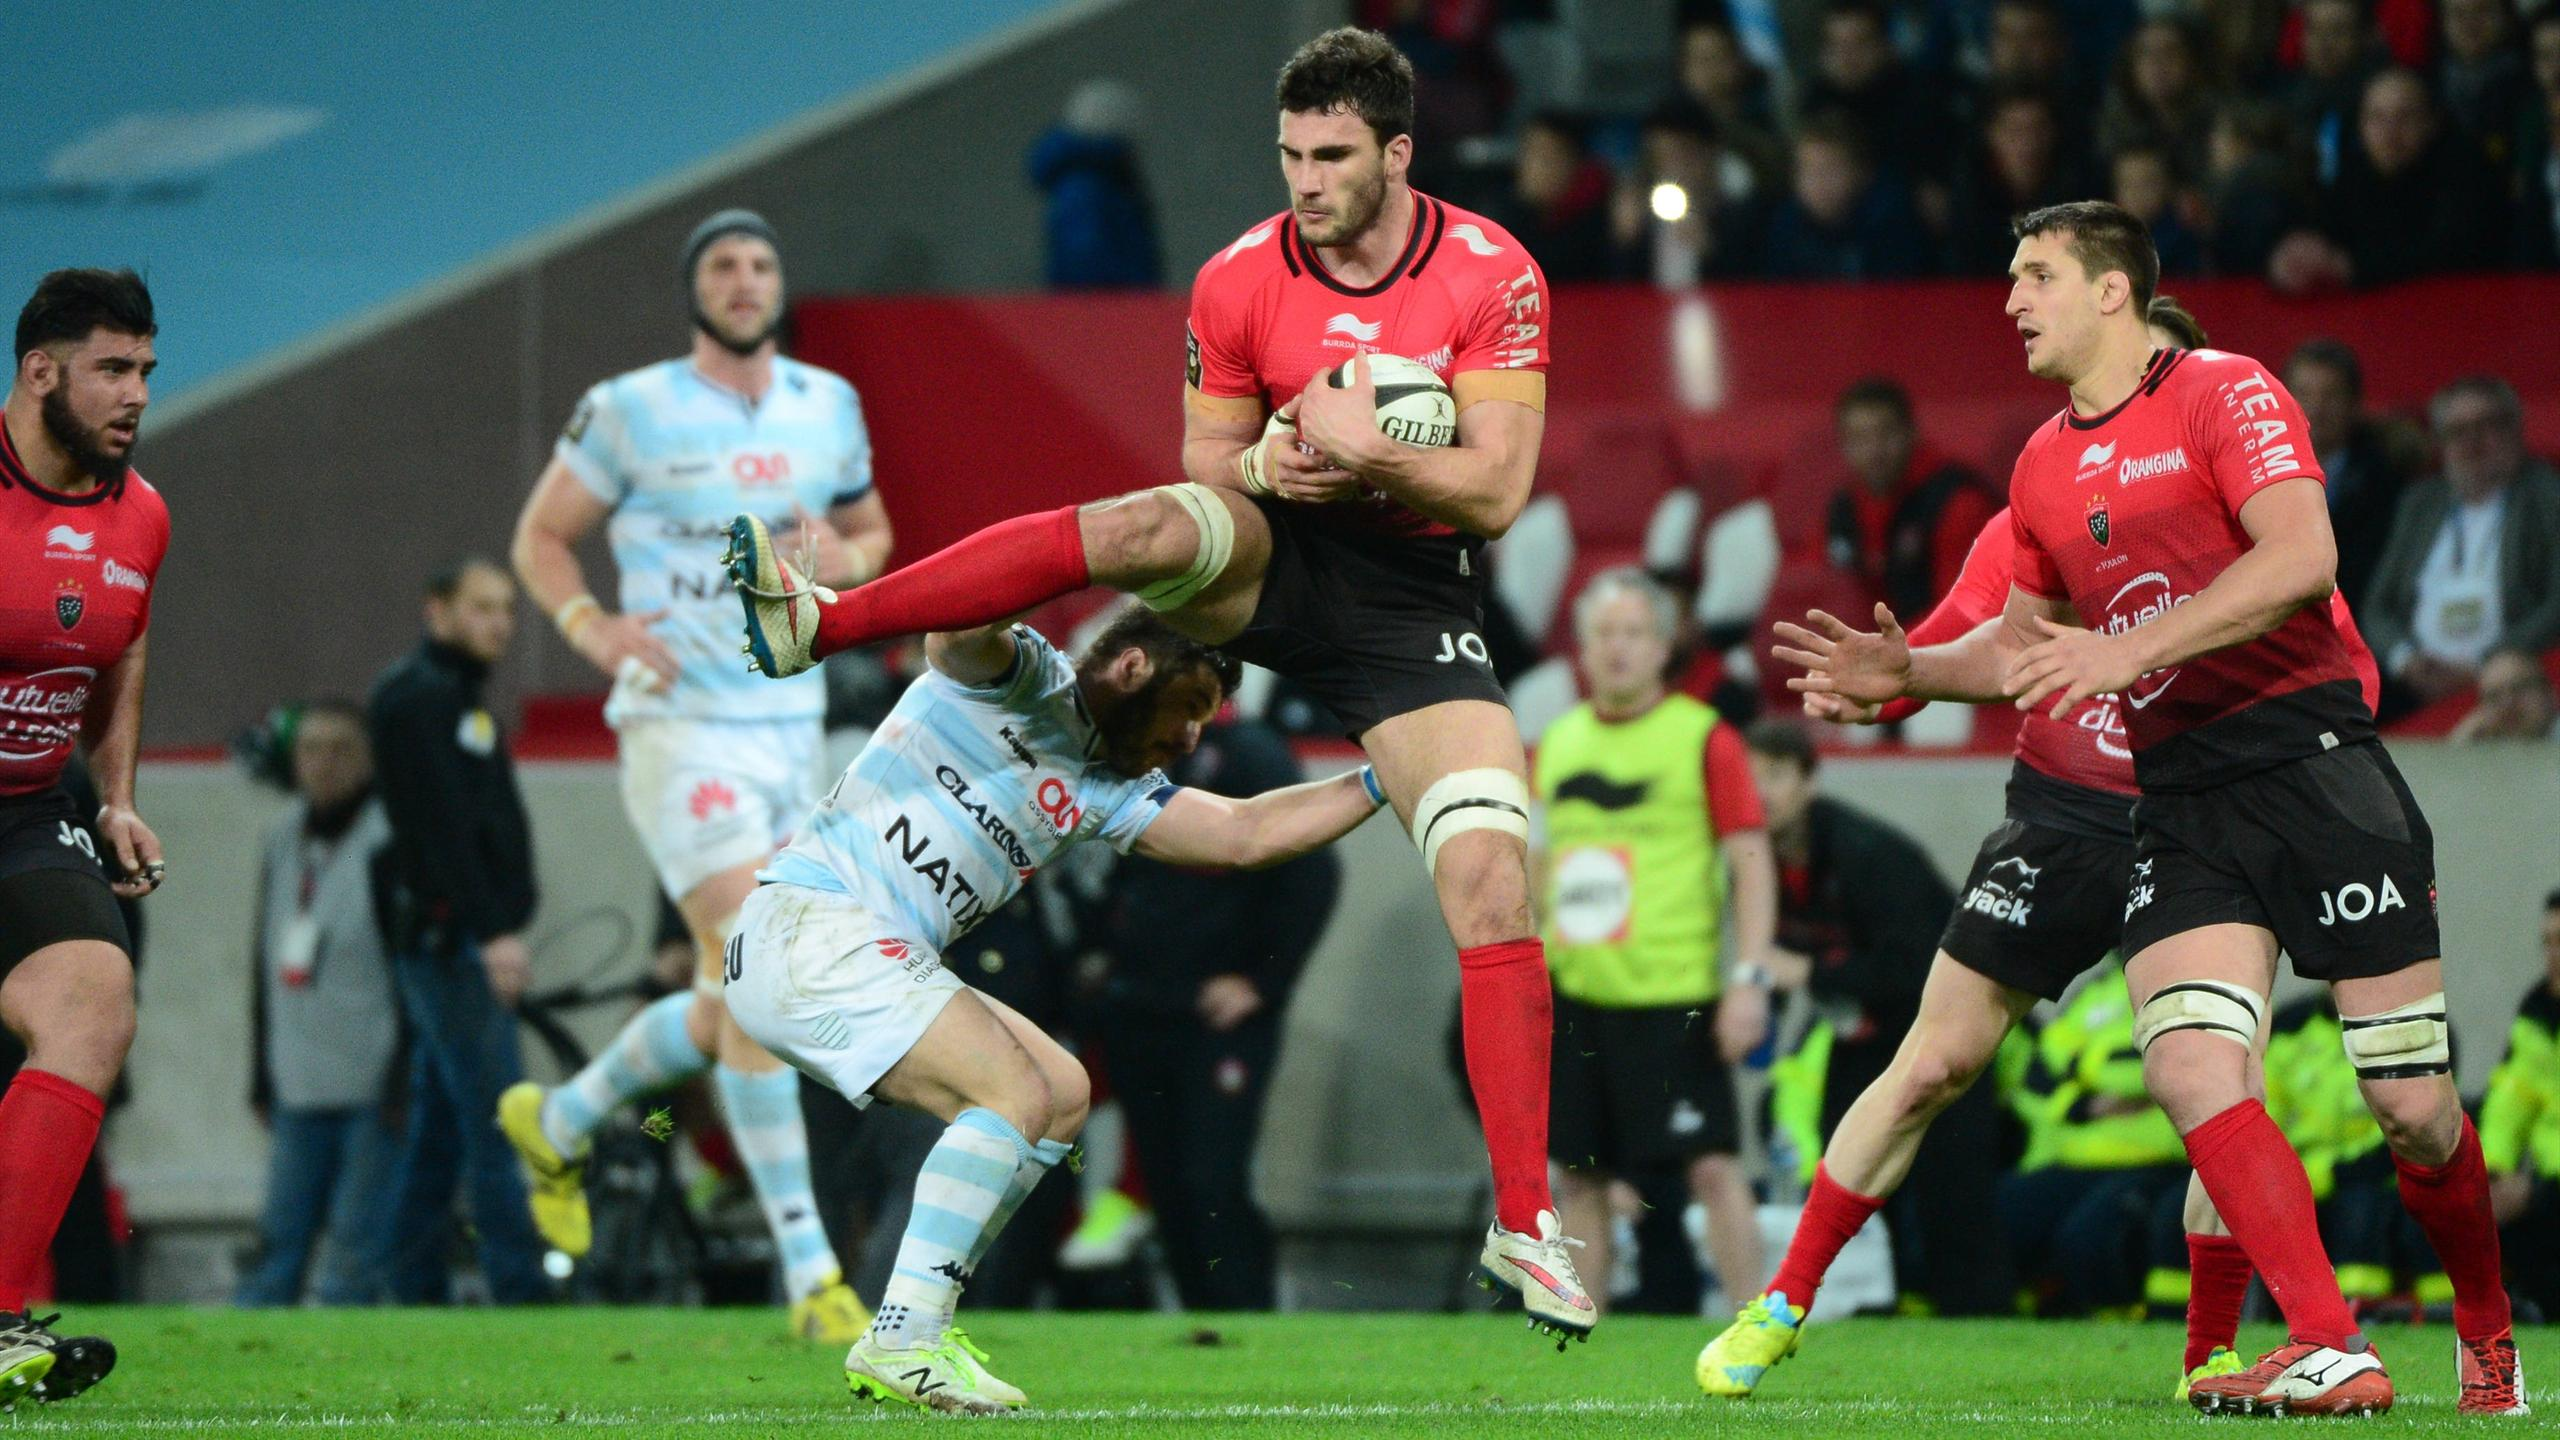 Charles Ollivon (Toulon) face au Racing - 26 mars 2016